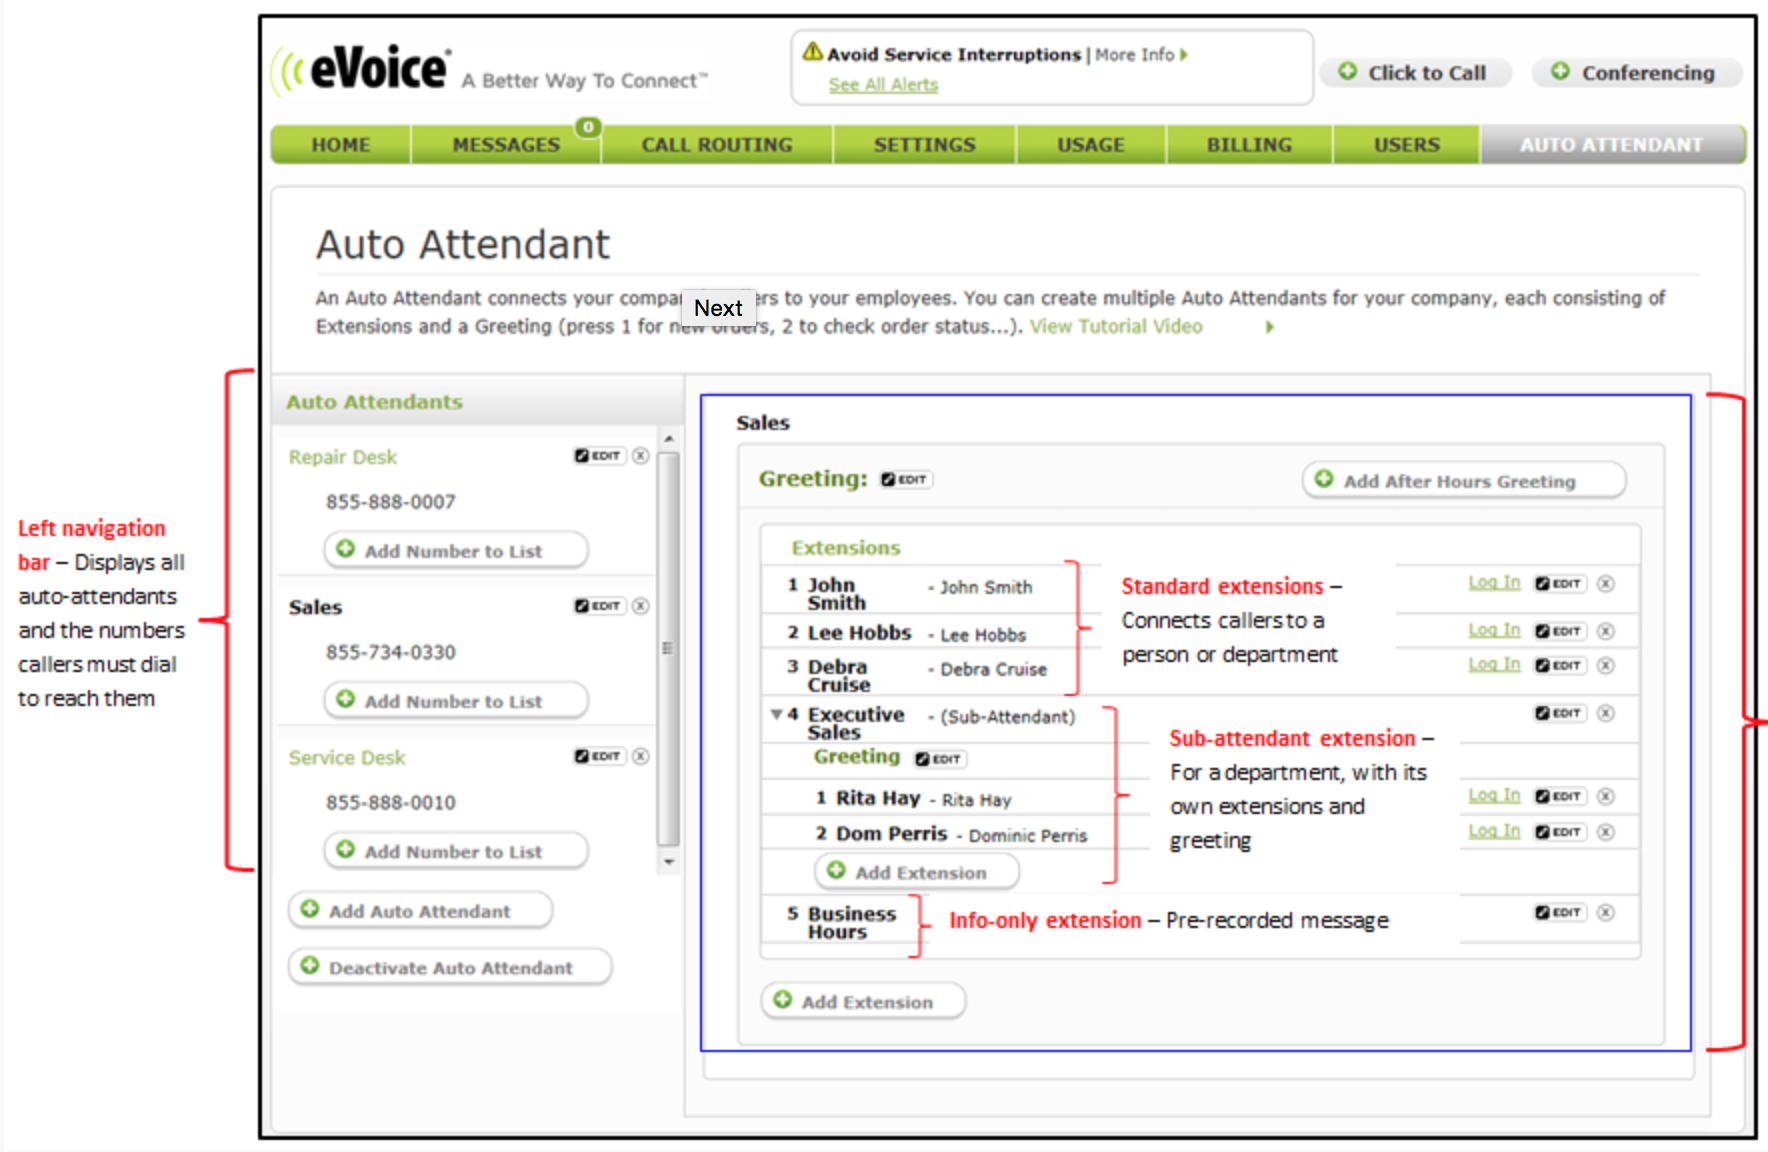 Our standard eVoice solution includes an eVoice number so you can place and receive calls, auto attendant, virtual receptionist capabilities and more. eVoice Live Receptionist combines the power of the standard eVoice solution with the premium service of a team of Live Receptionist to answer your calls and handle administrative tasks for you.